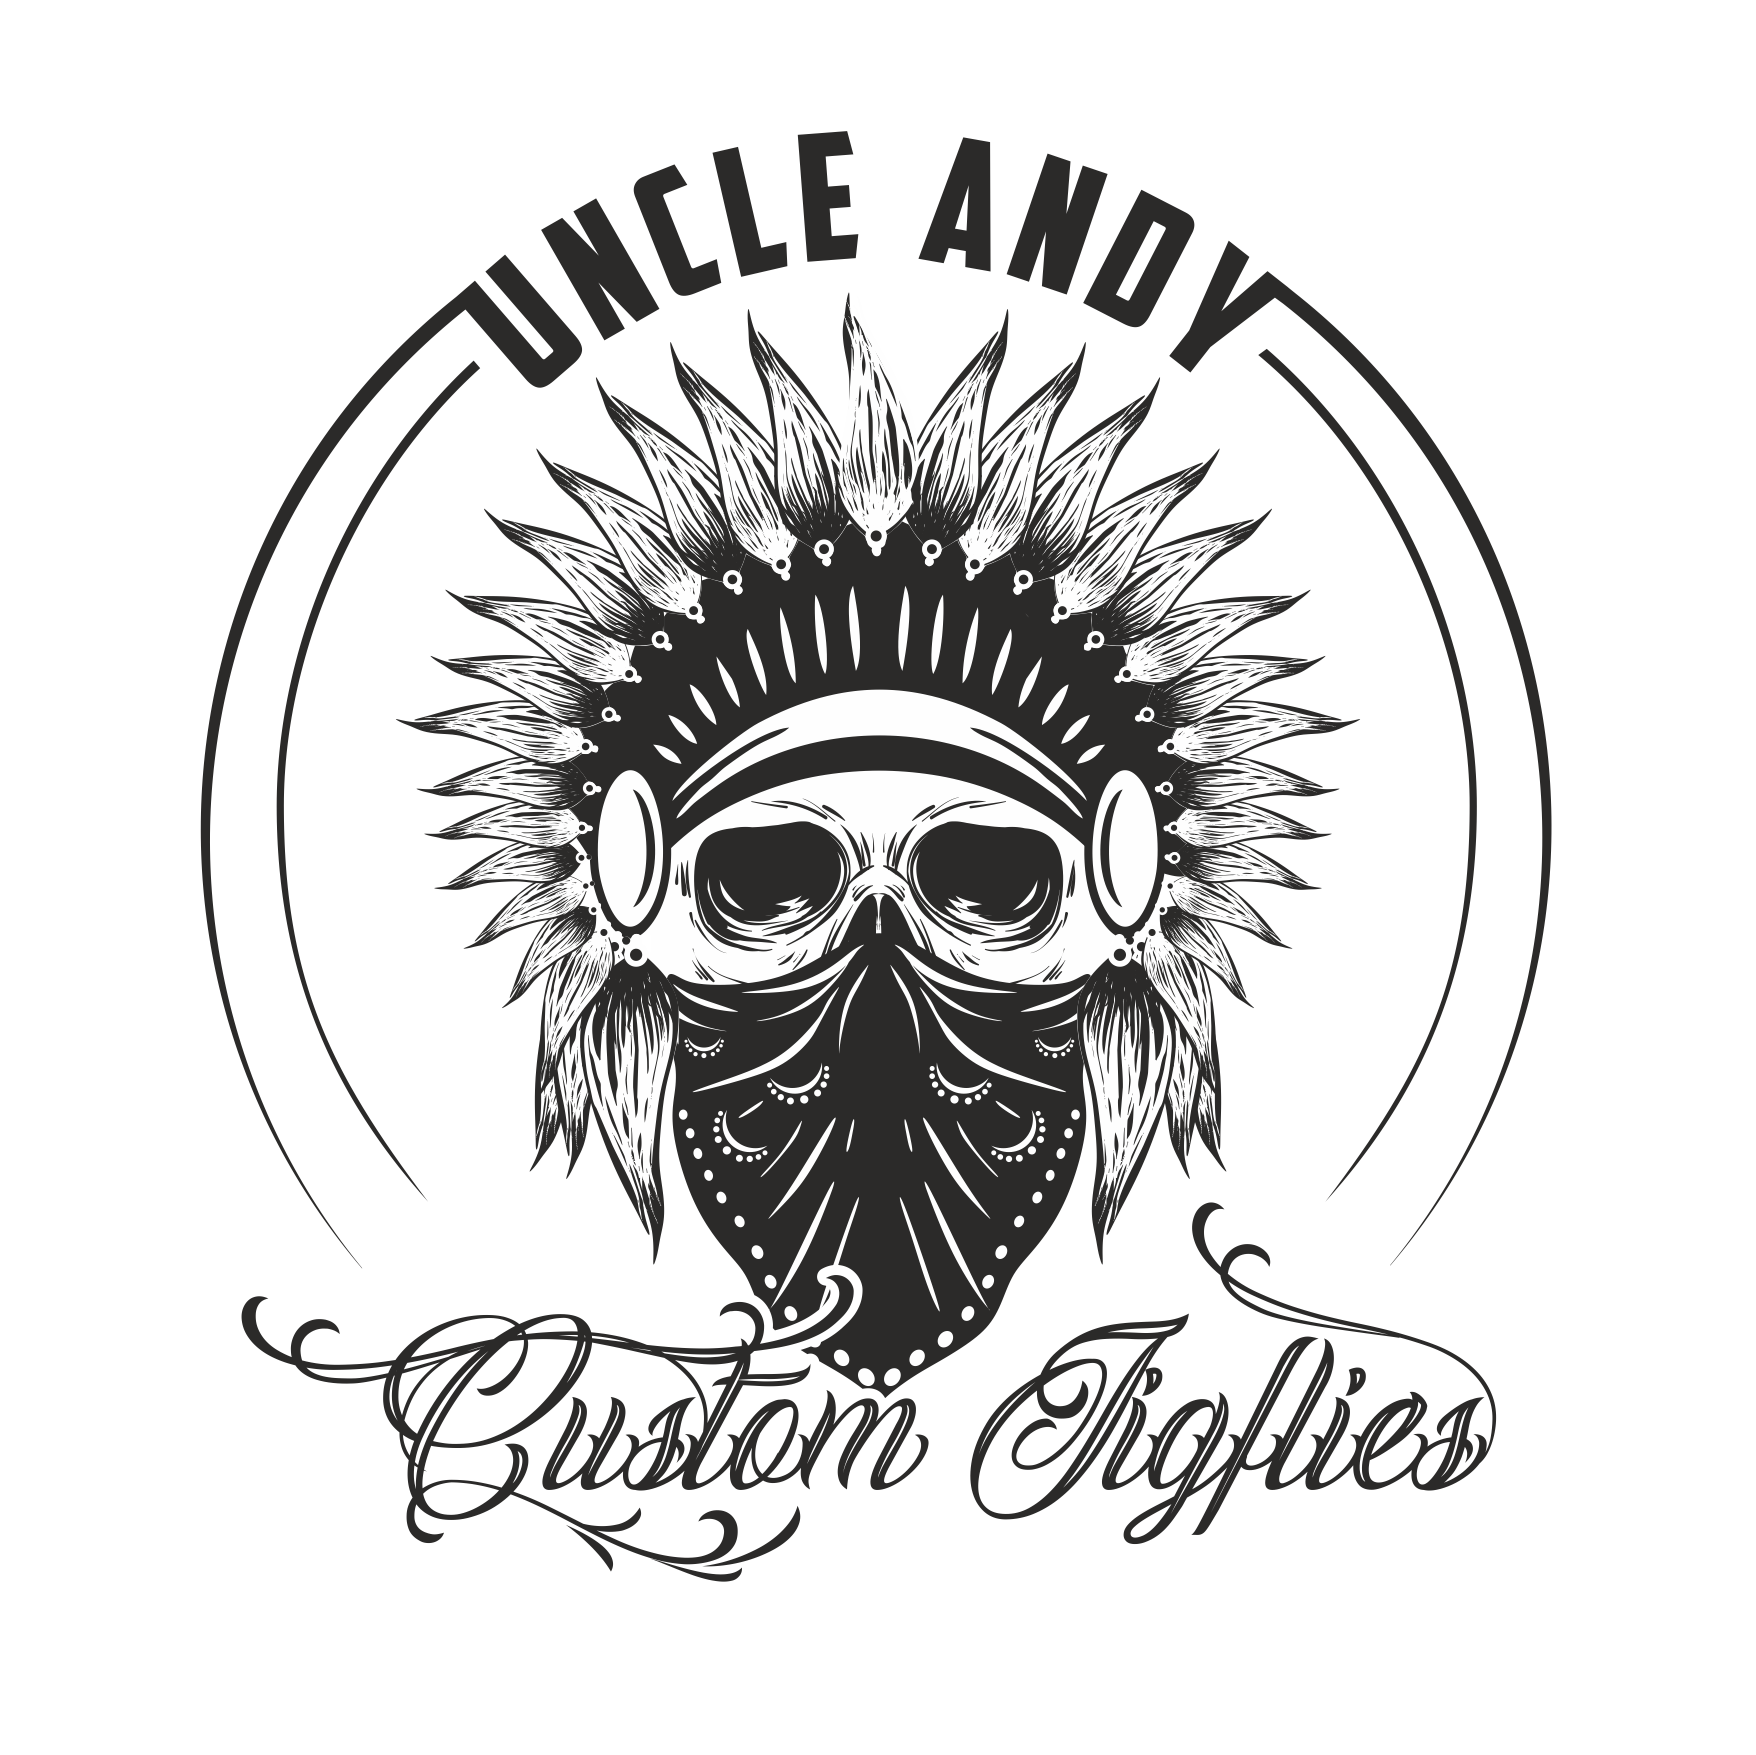 Uncle Andy Custom Lures logo monochrom